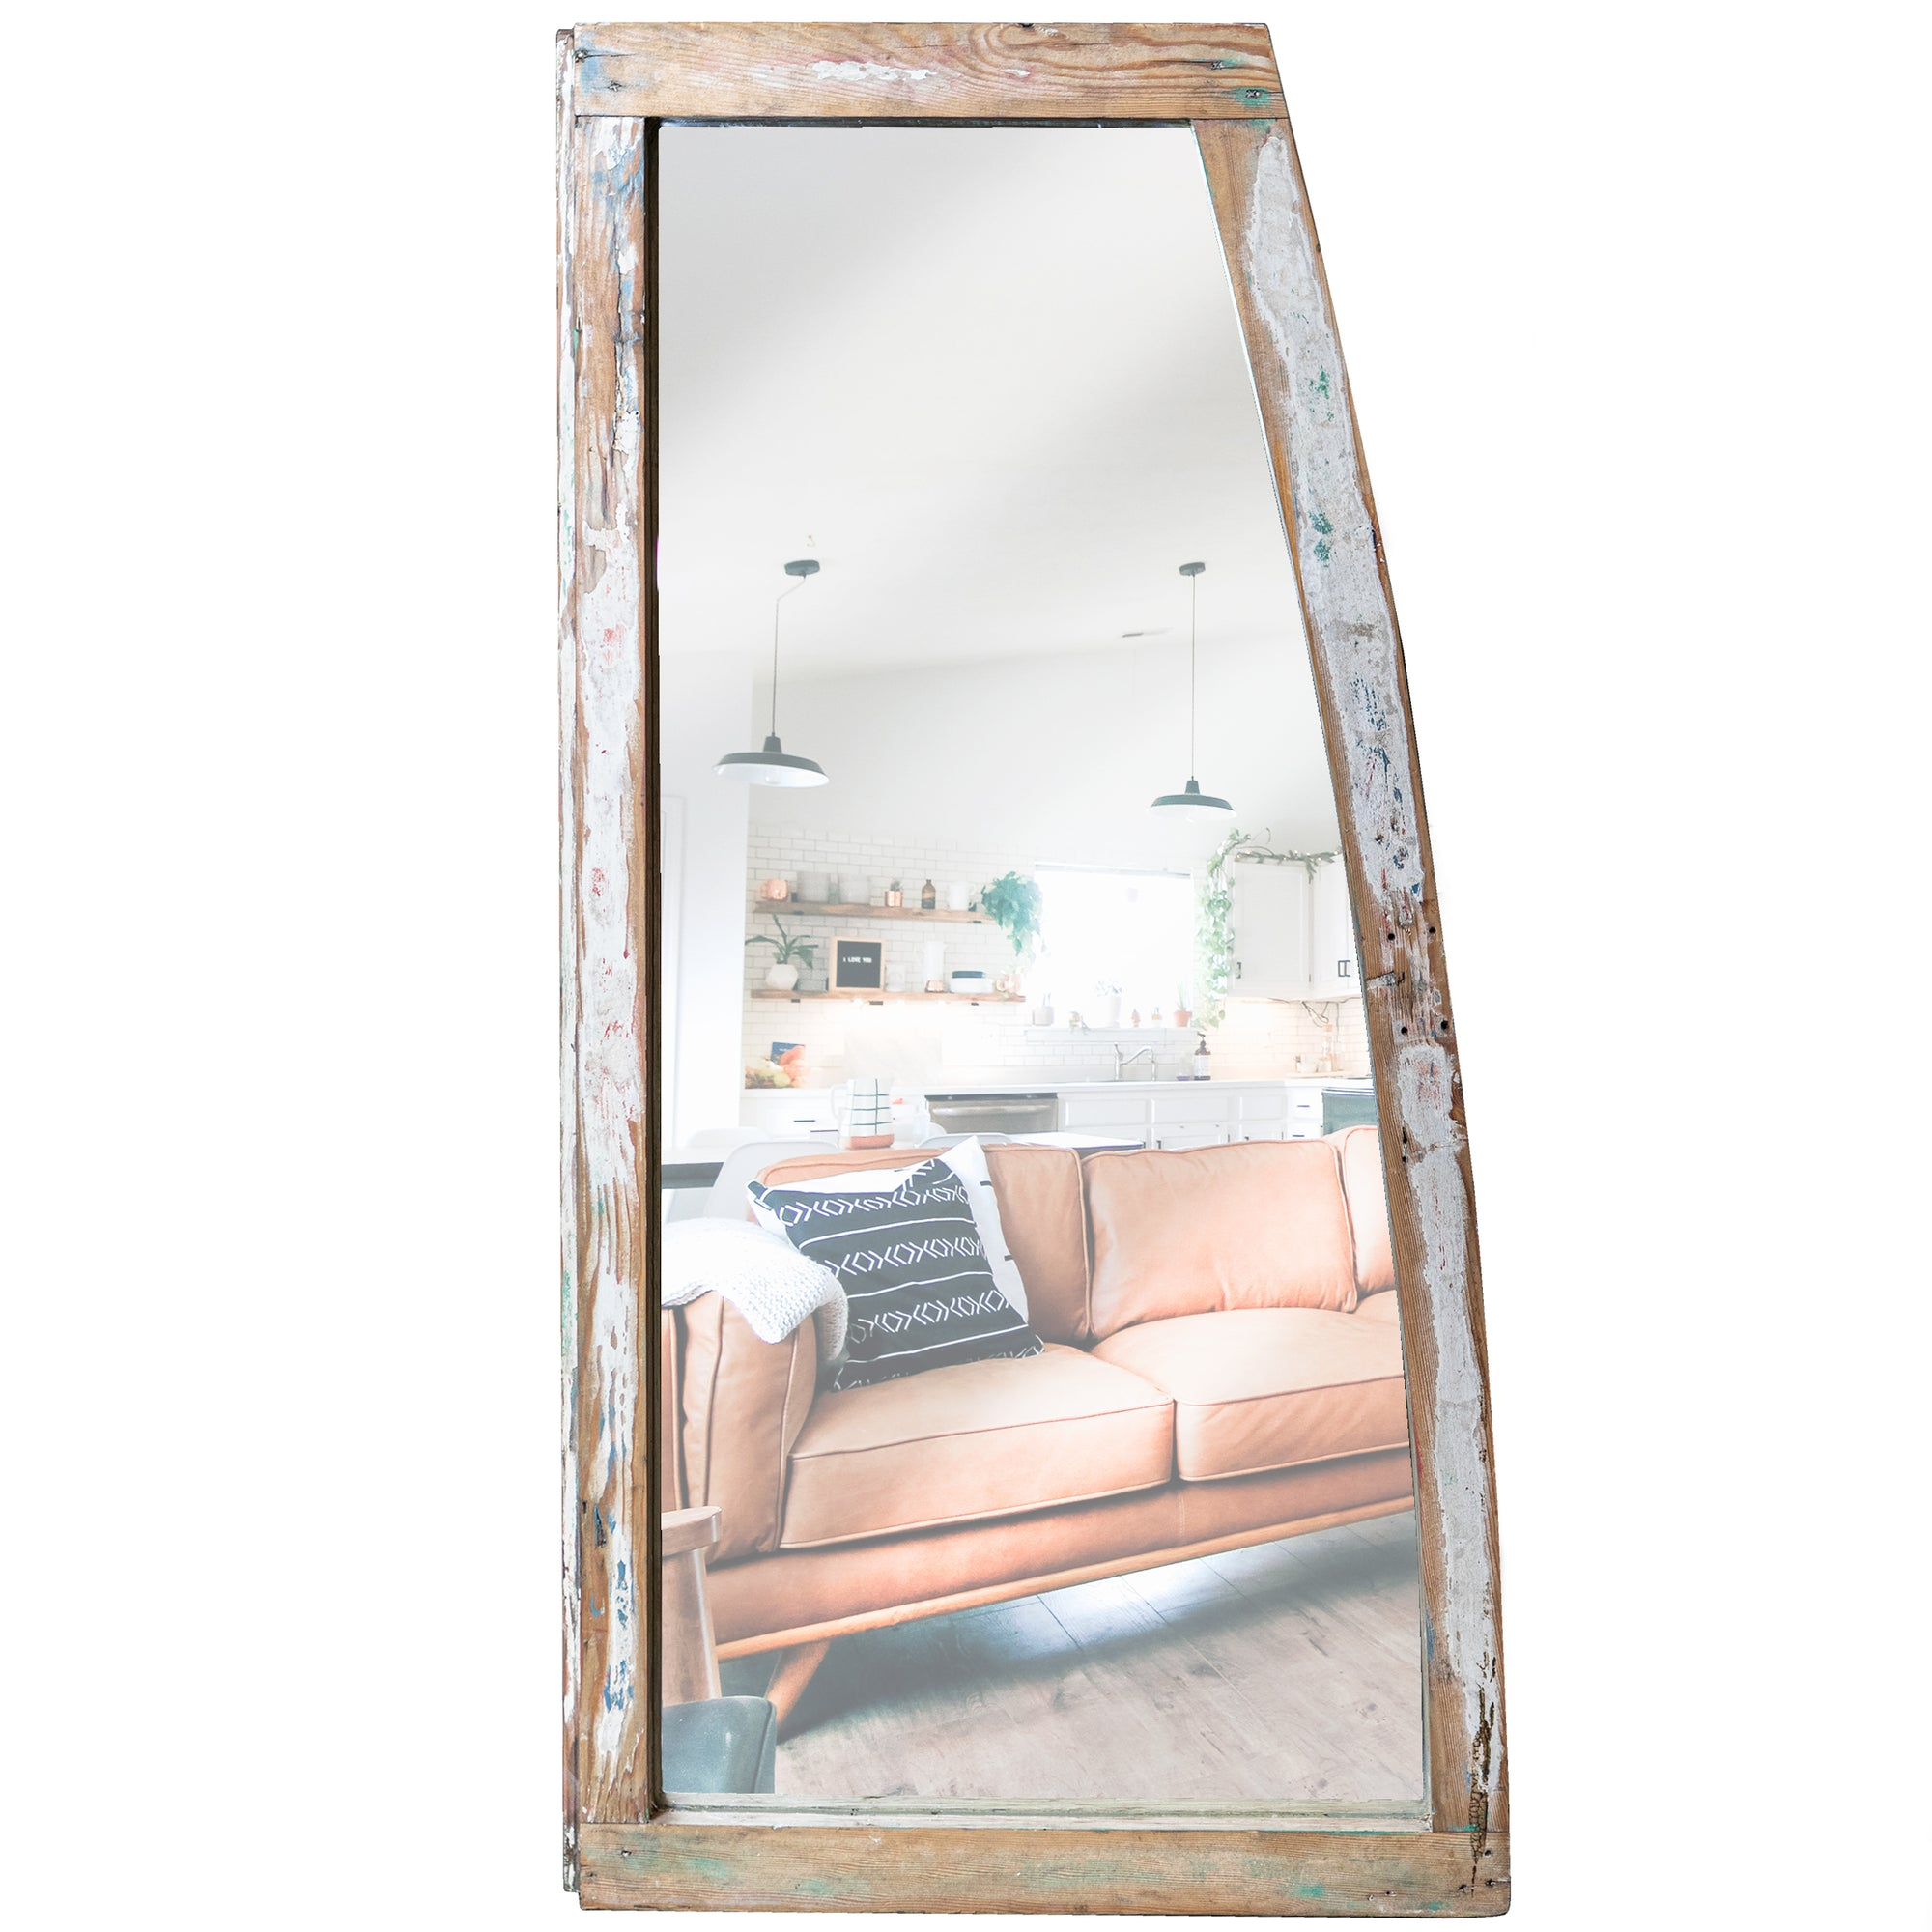 Upcycled Antique Victorian Sash Window Mirror